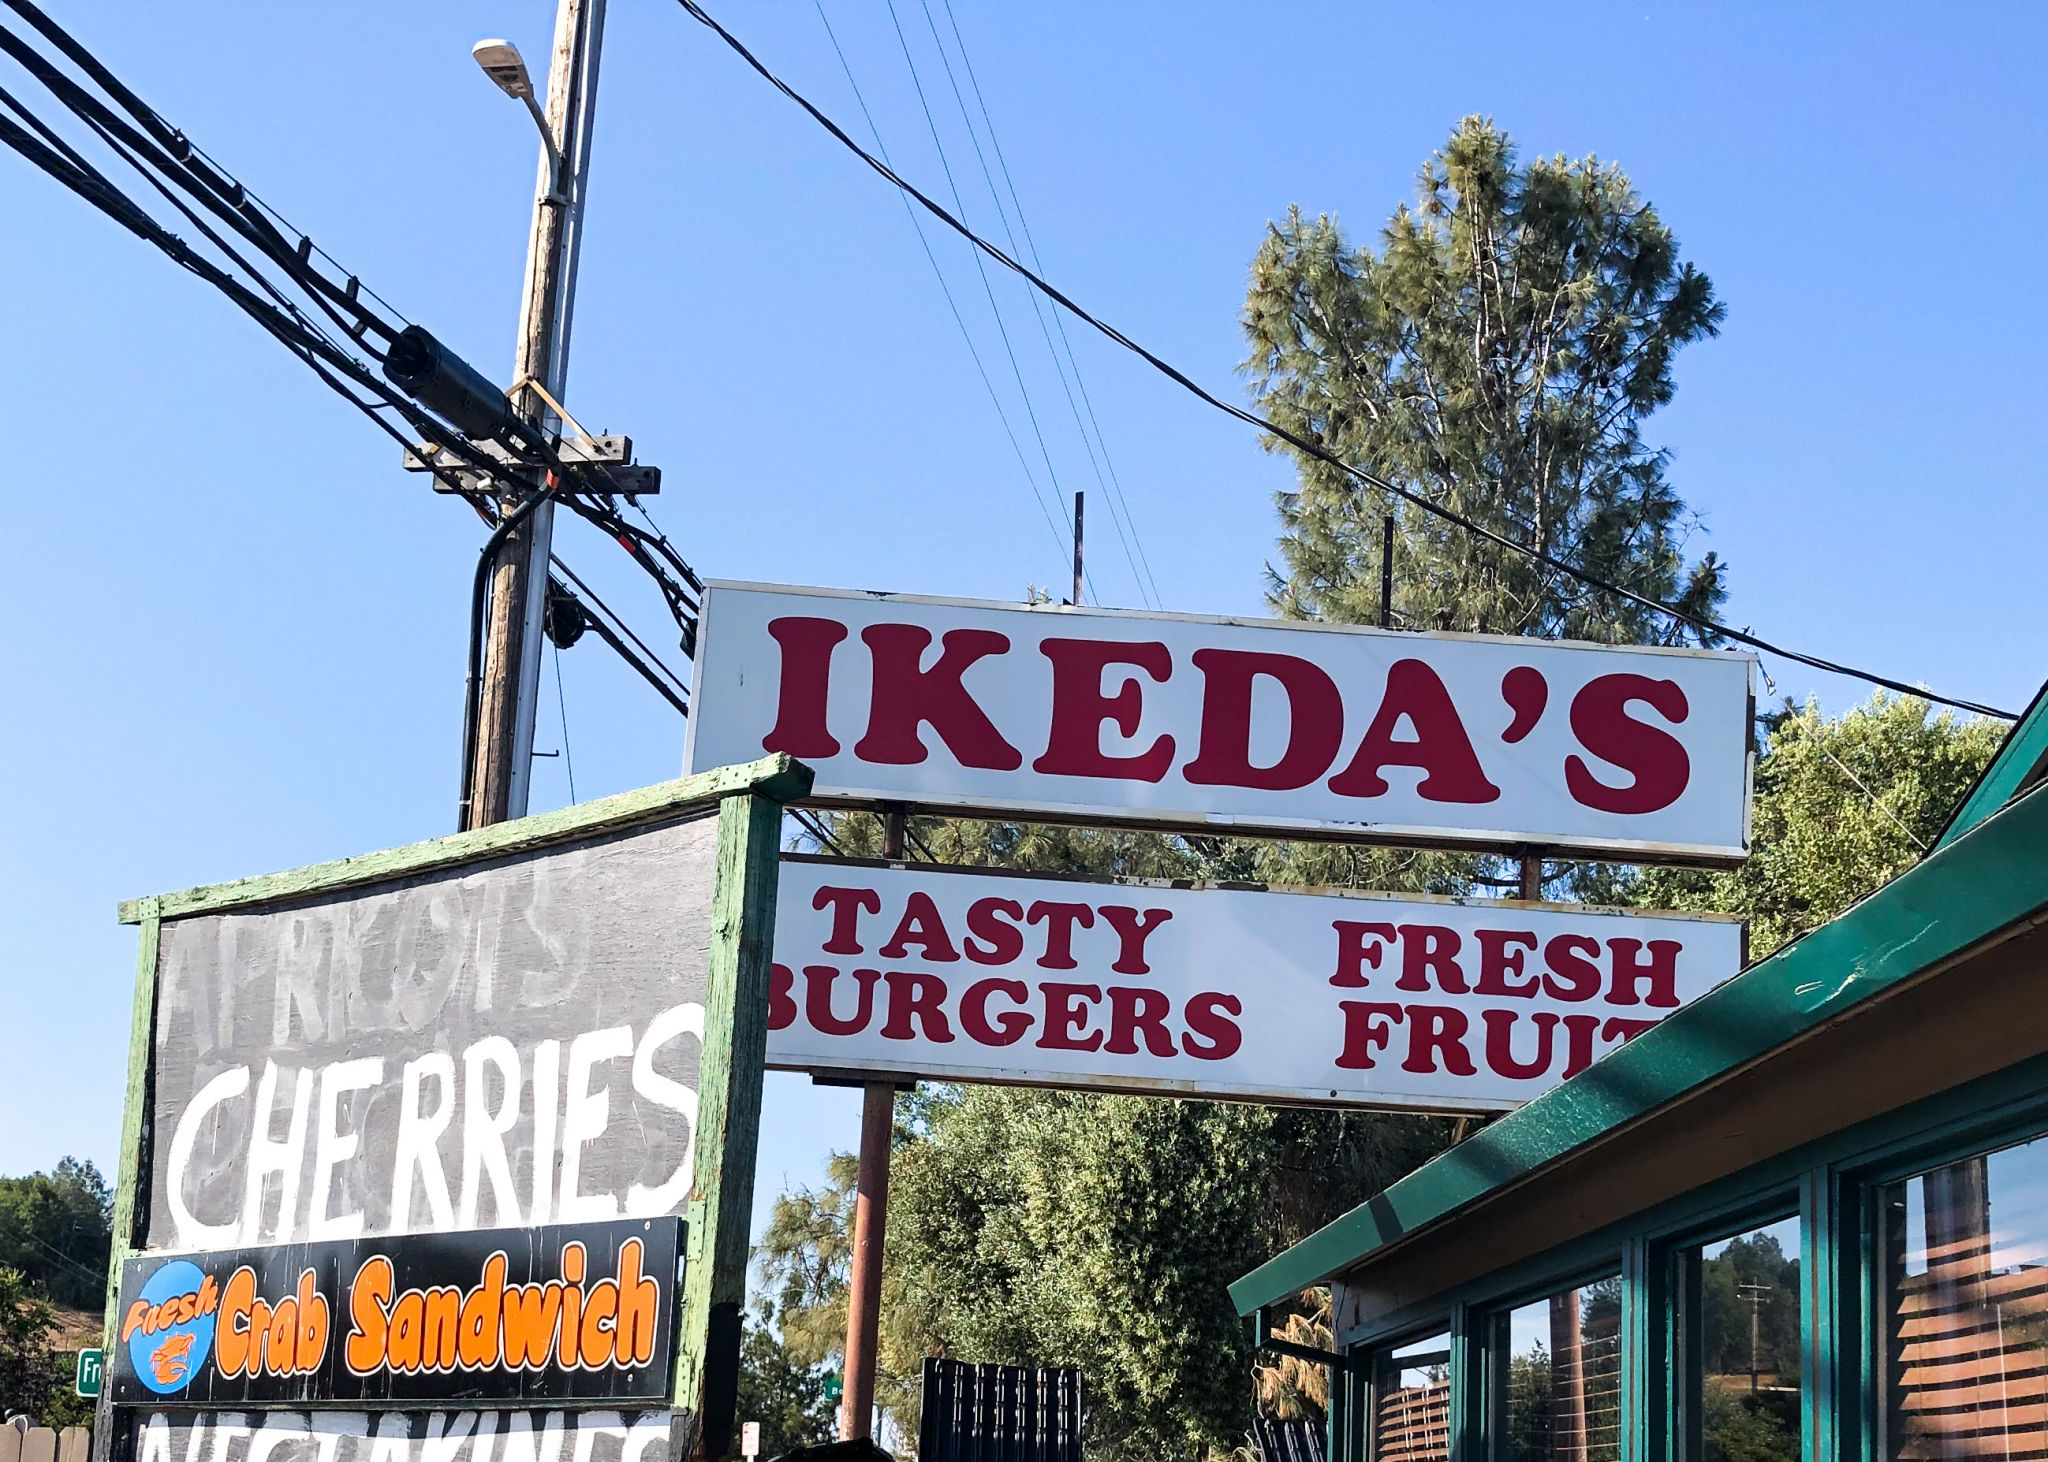 This market is the best roadside stop on the way to Tahoe